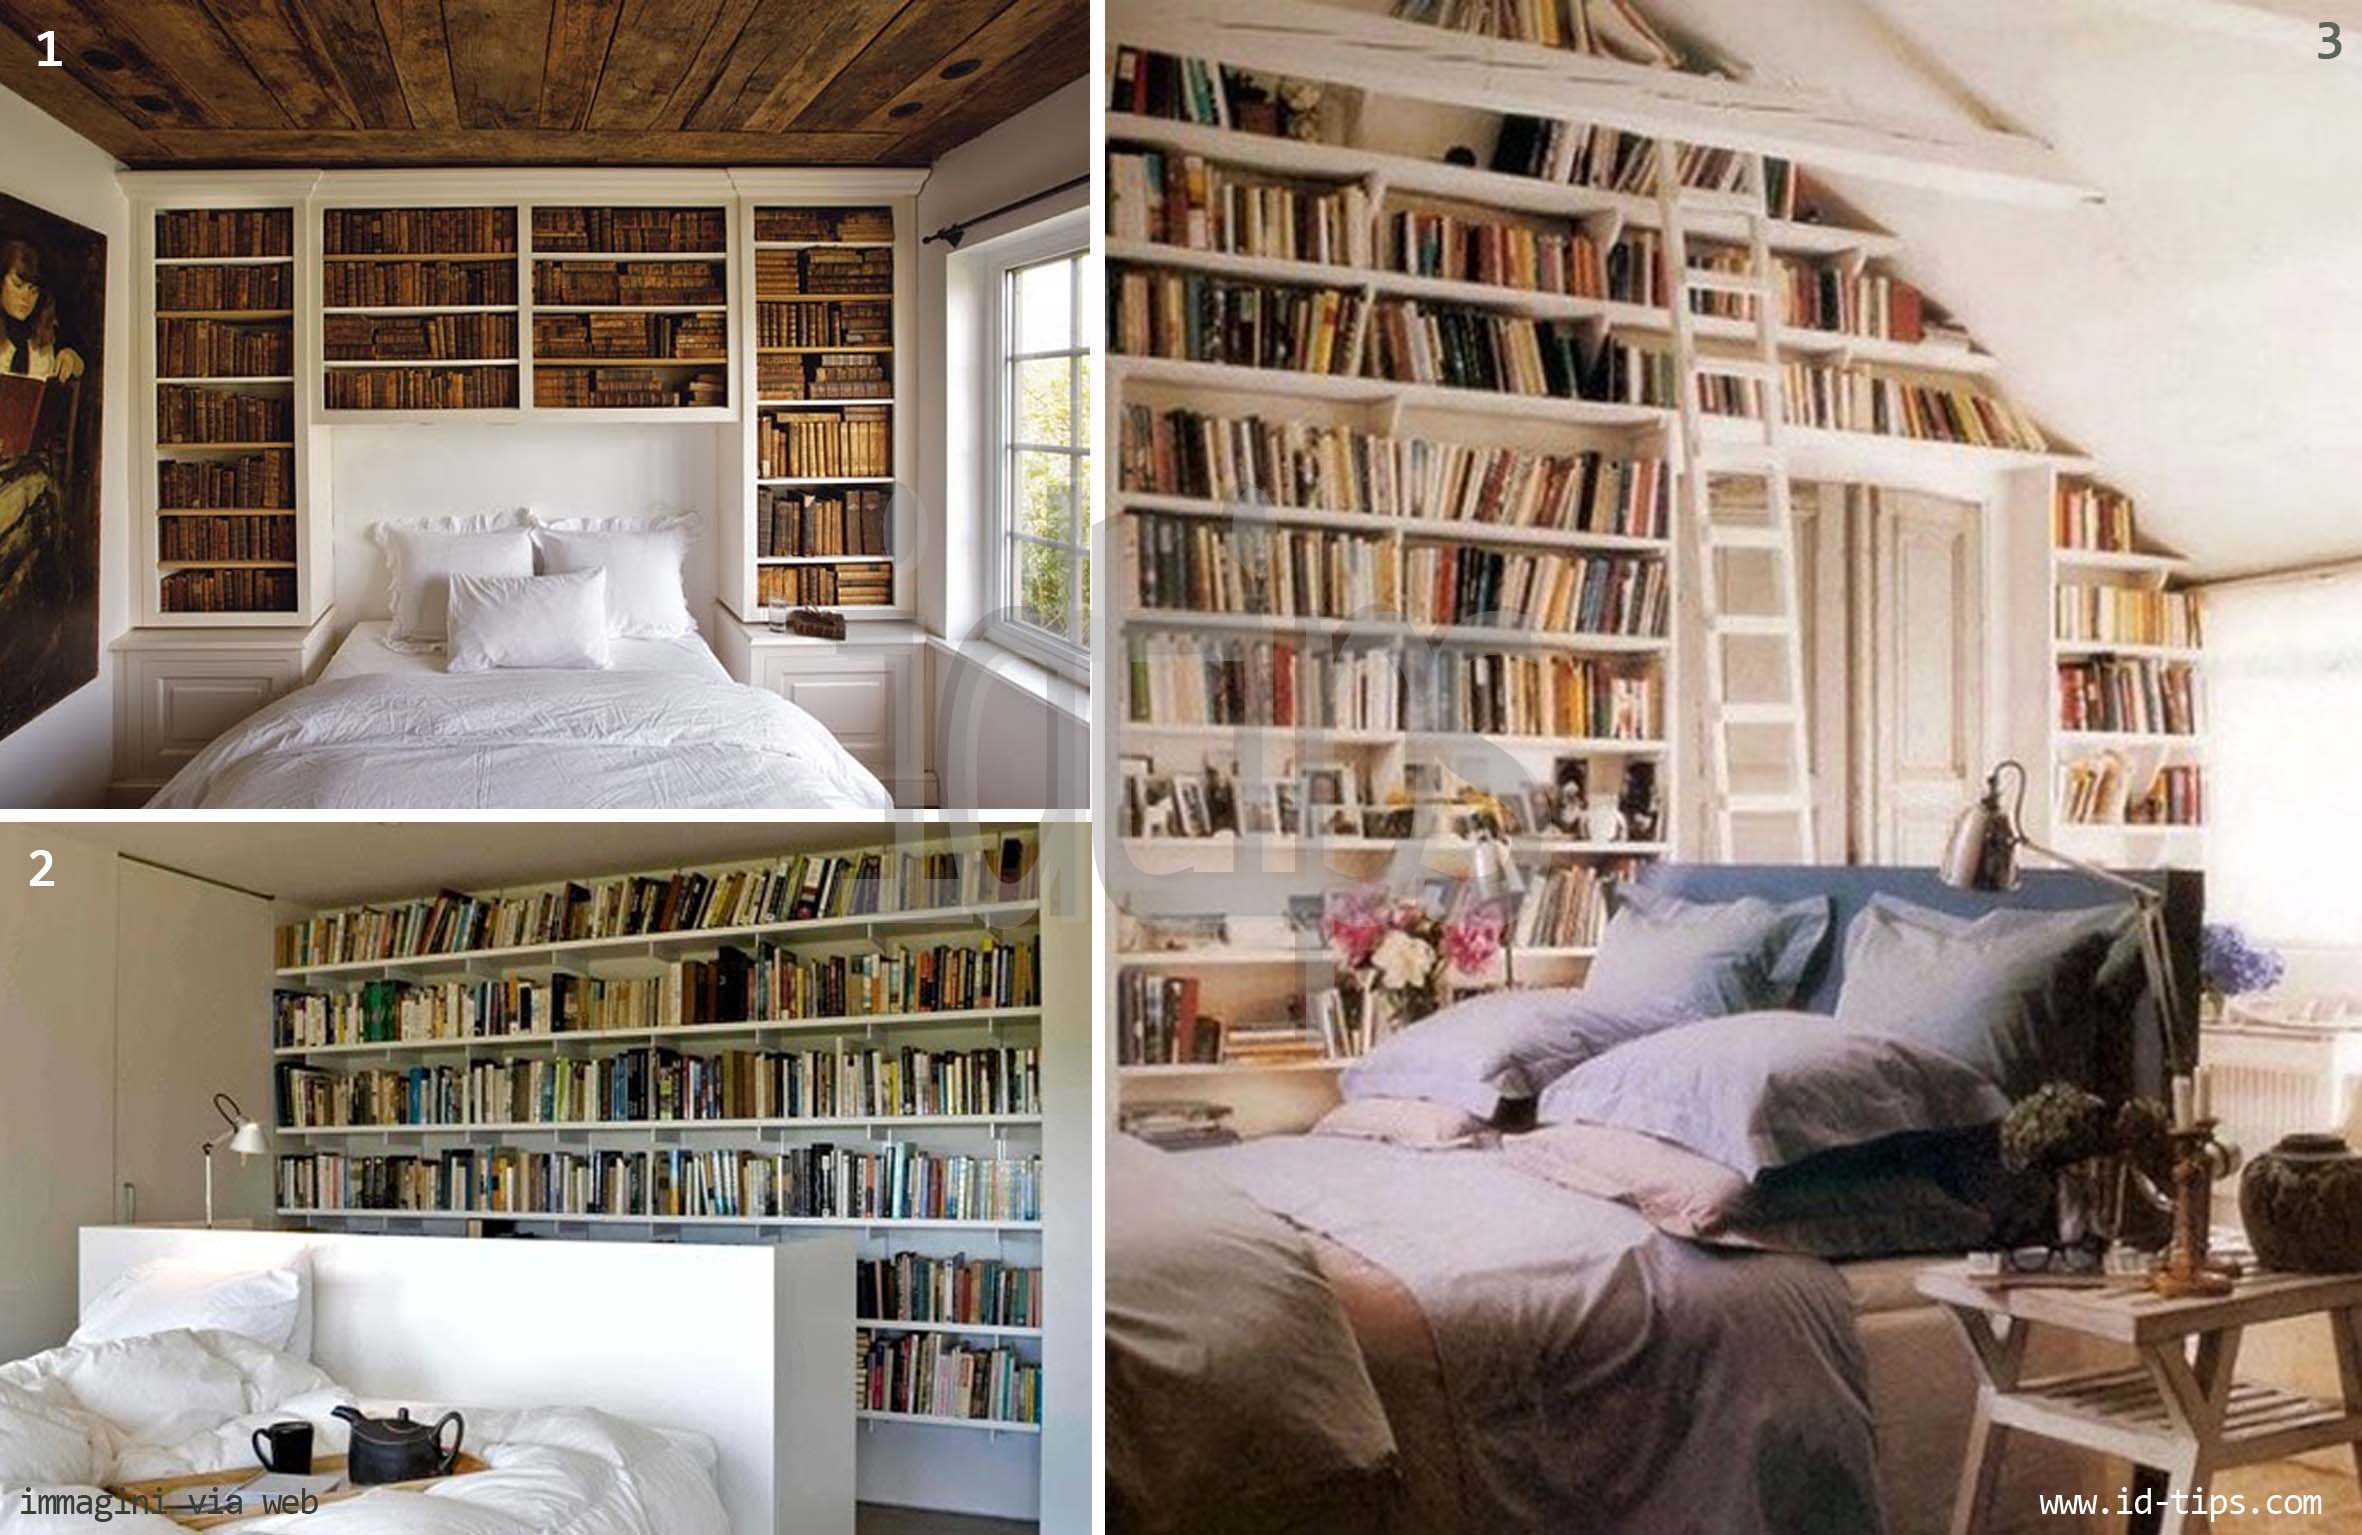 Book wall quando i libri arredano id tips interior design tips blog - Libreria per camera da letto ...